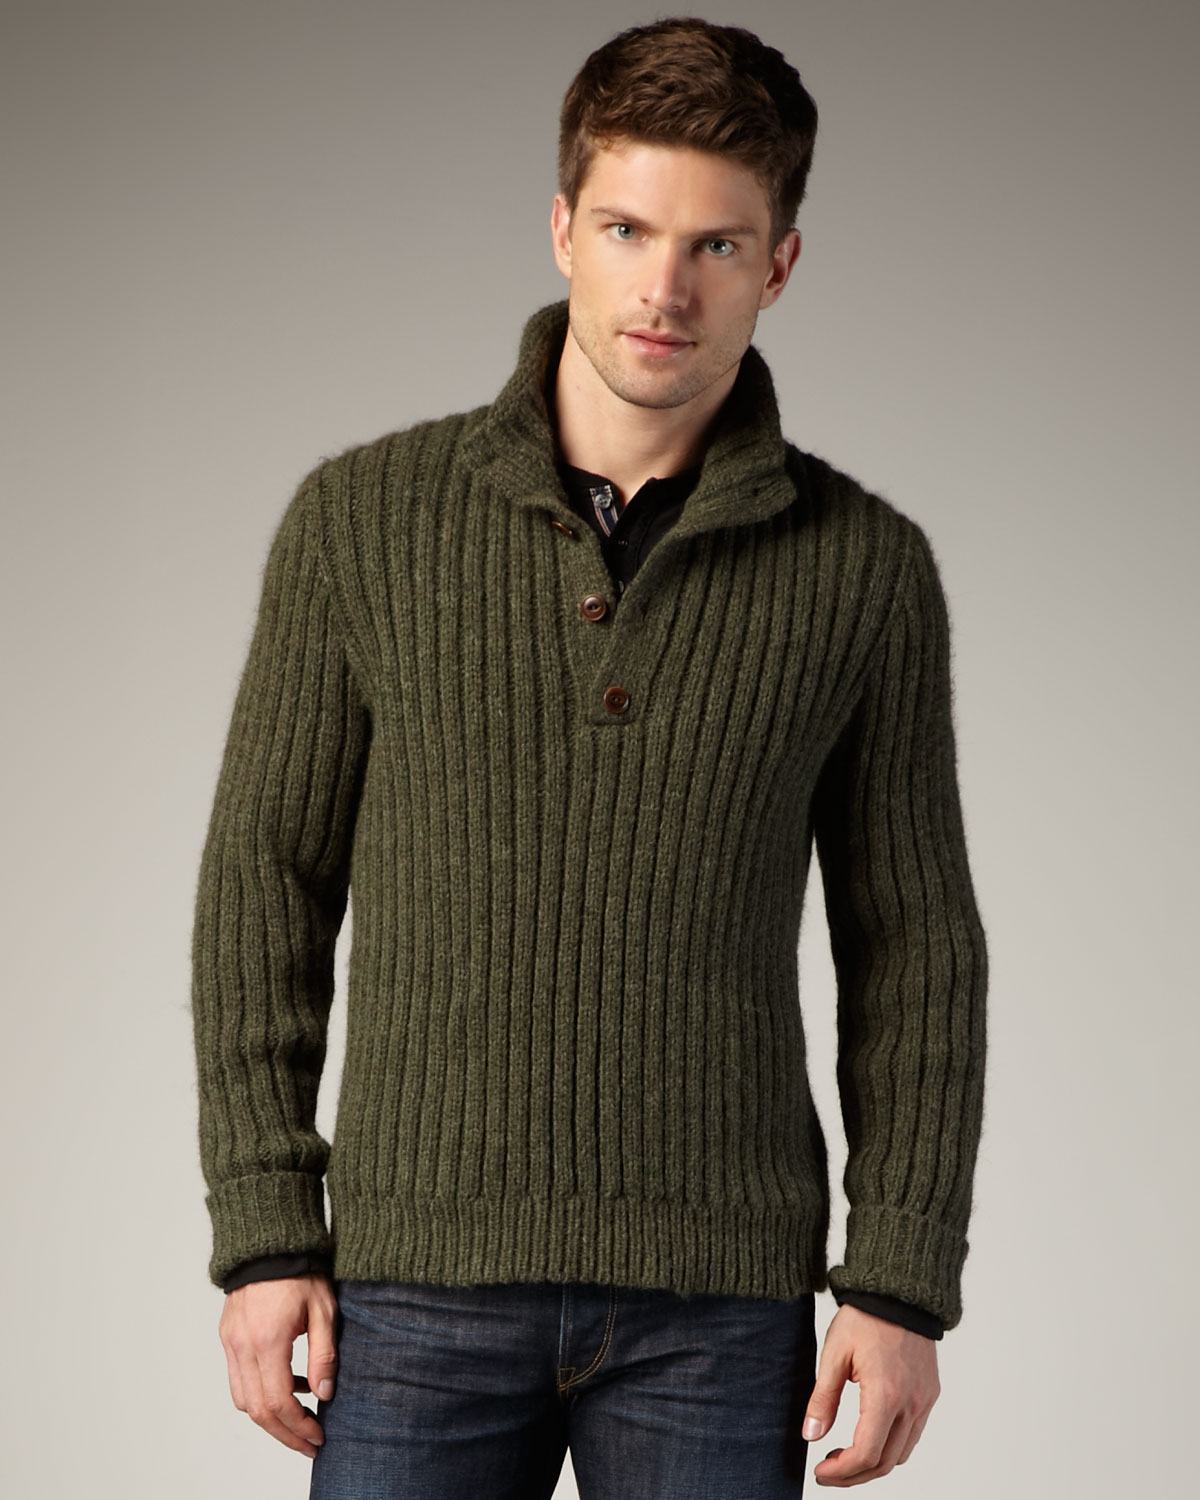 Shop for System Men's Henley Sweater. Free Shipping on orders over $45 at coolmfilehj.cf - Your Online Men's Clothing Shop! Get 5% in rewards with Club O! -